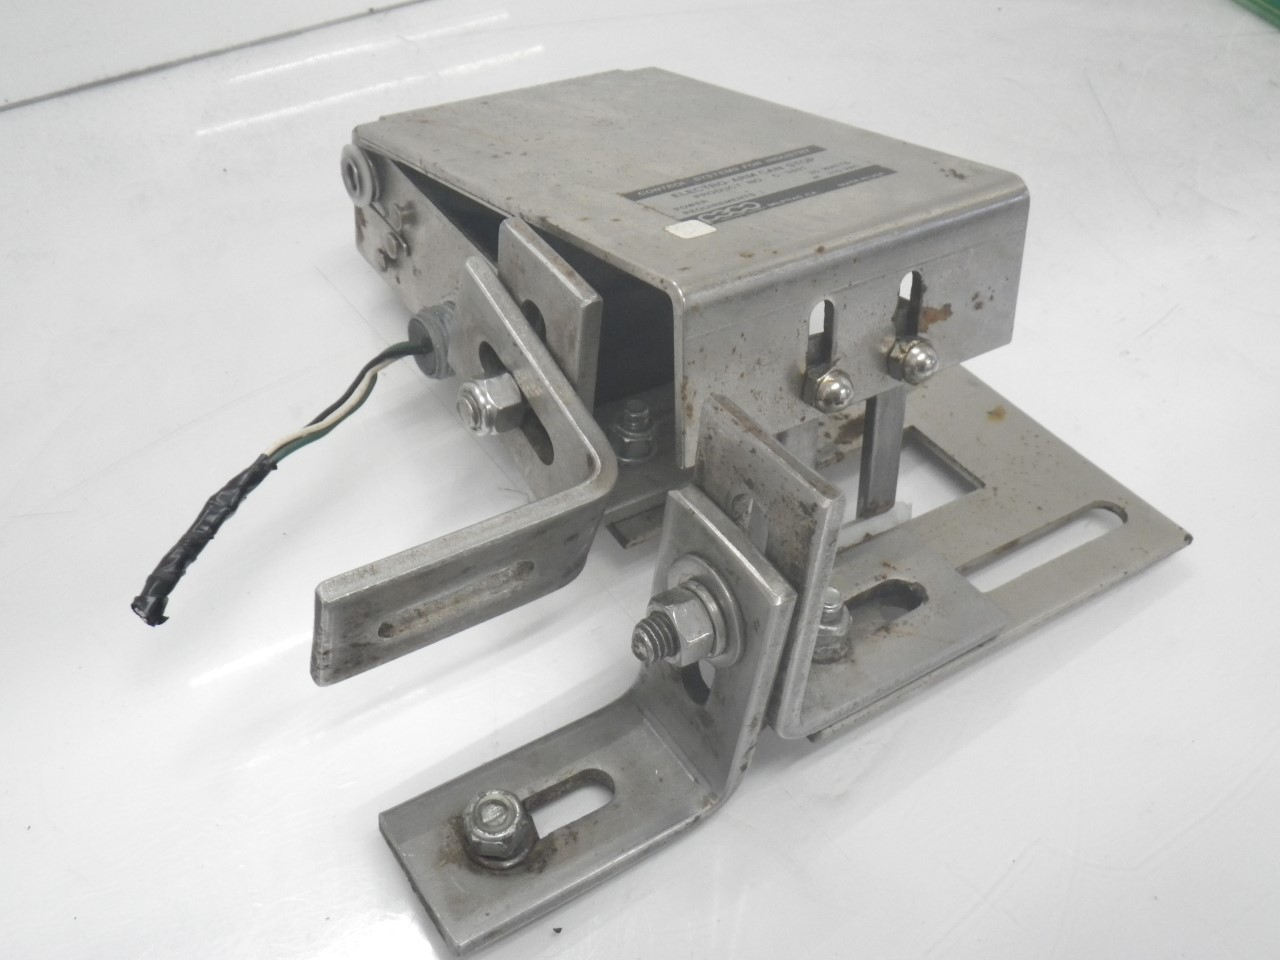 IMGP6937C-3801 C-3800A 3012Peco Electro-arm Controls forPackage Inspection(Used Tested) (17)